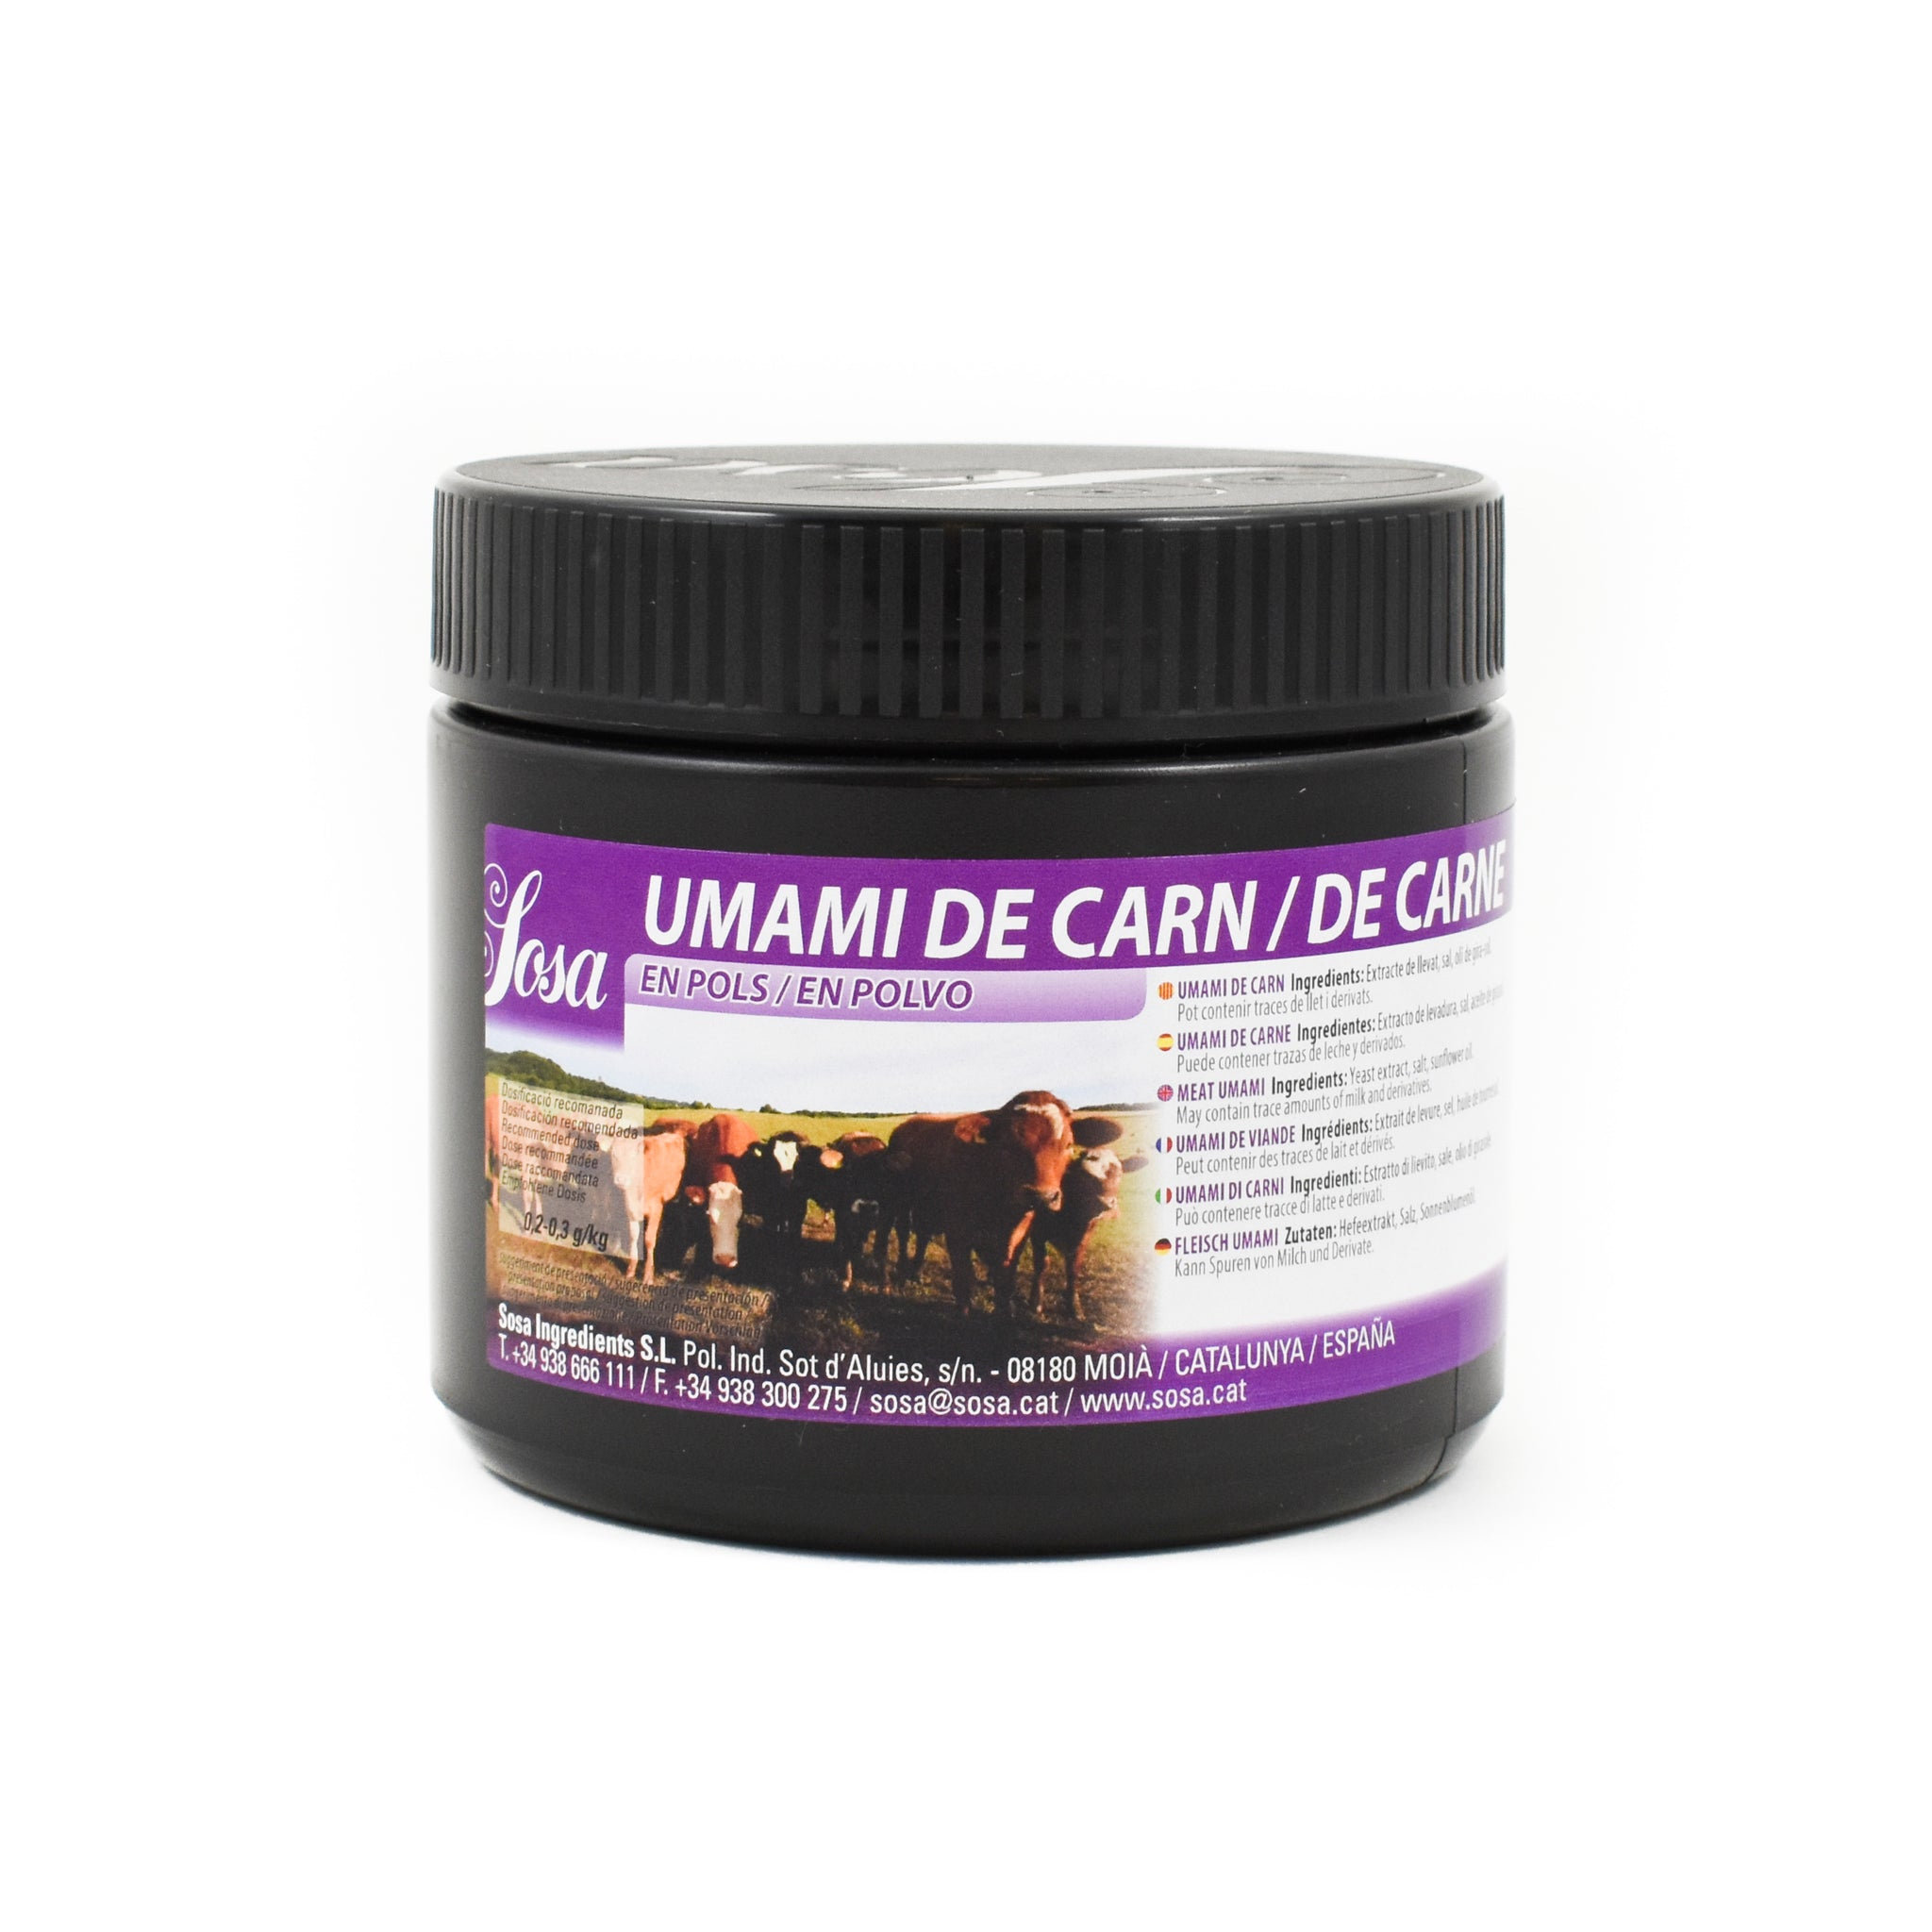 Sosa Meat Umami Powder 200g Ingredients Modernist & Molecular